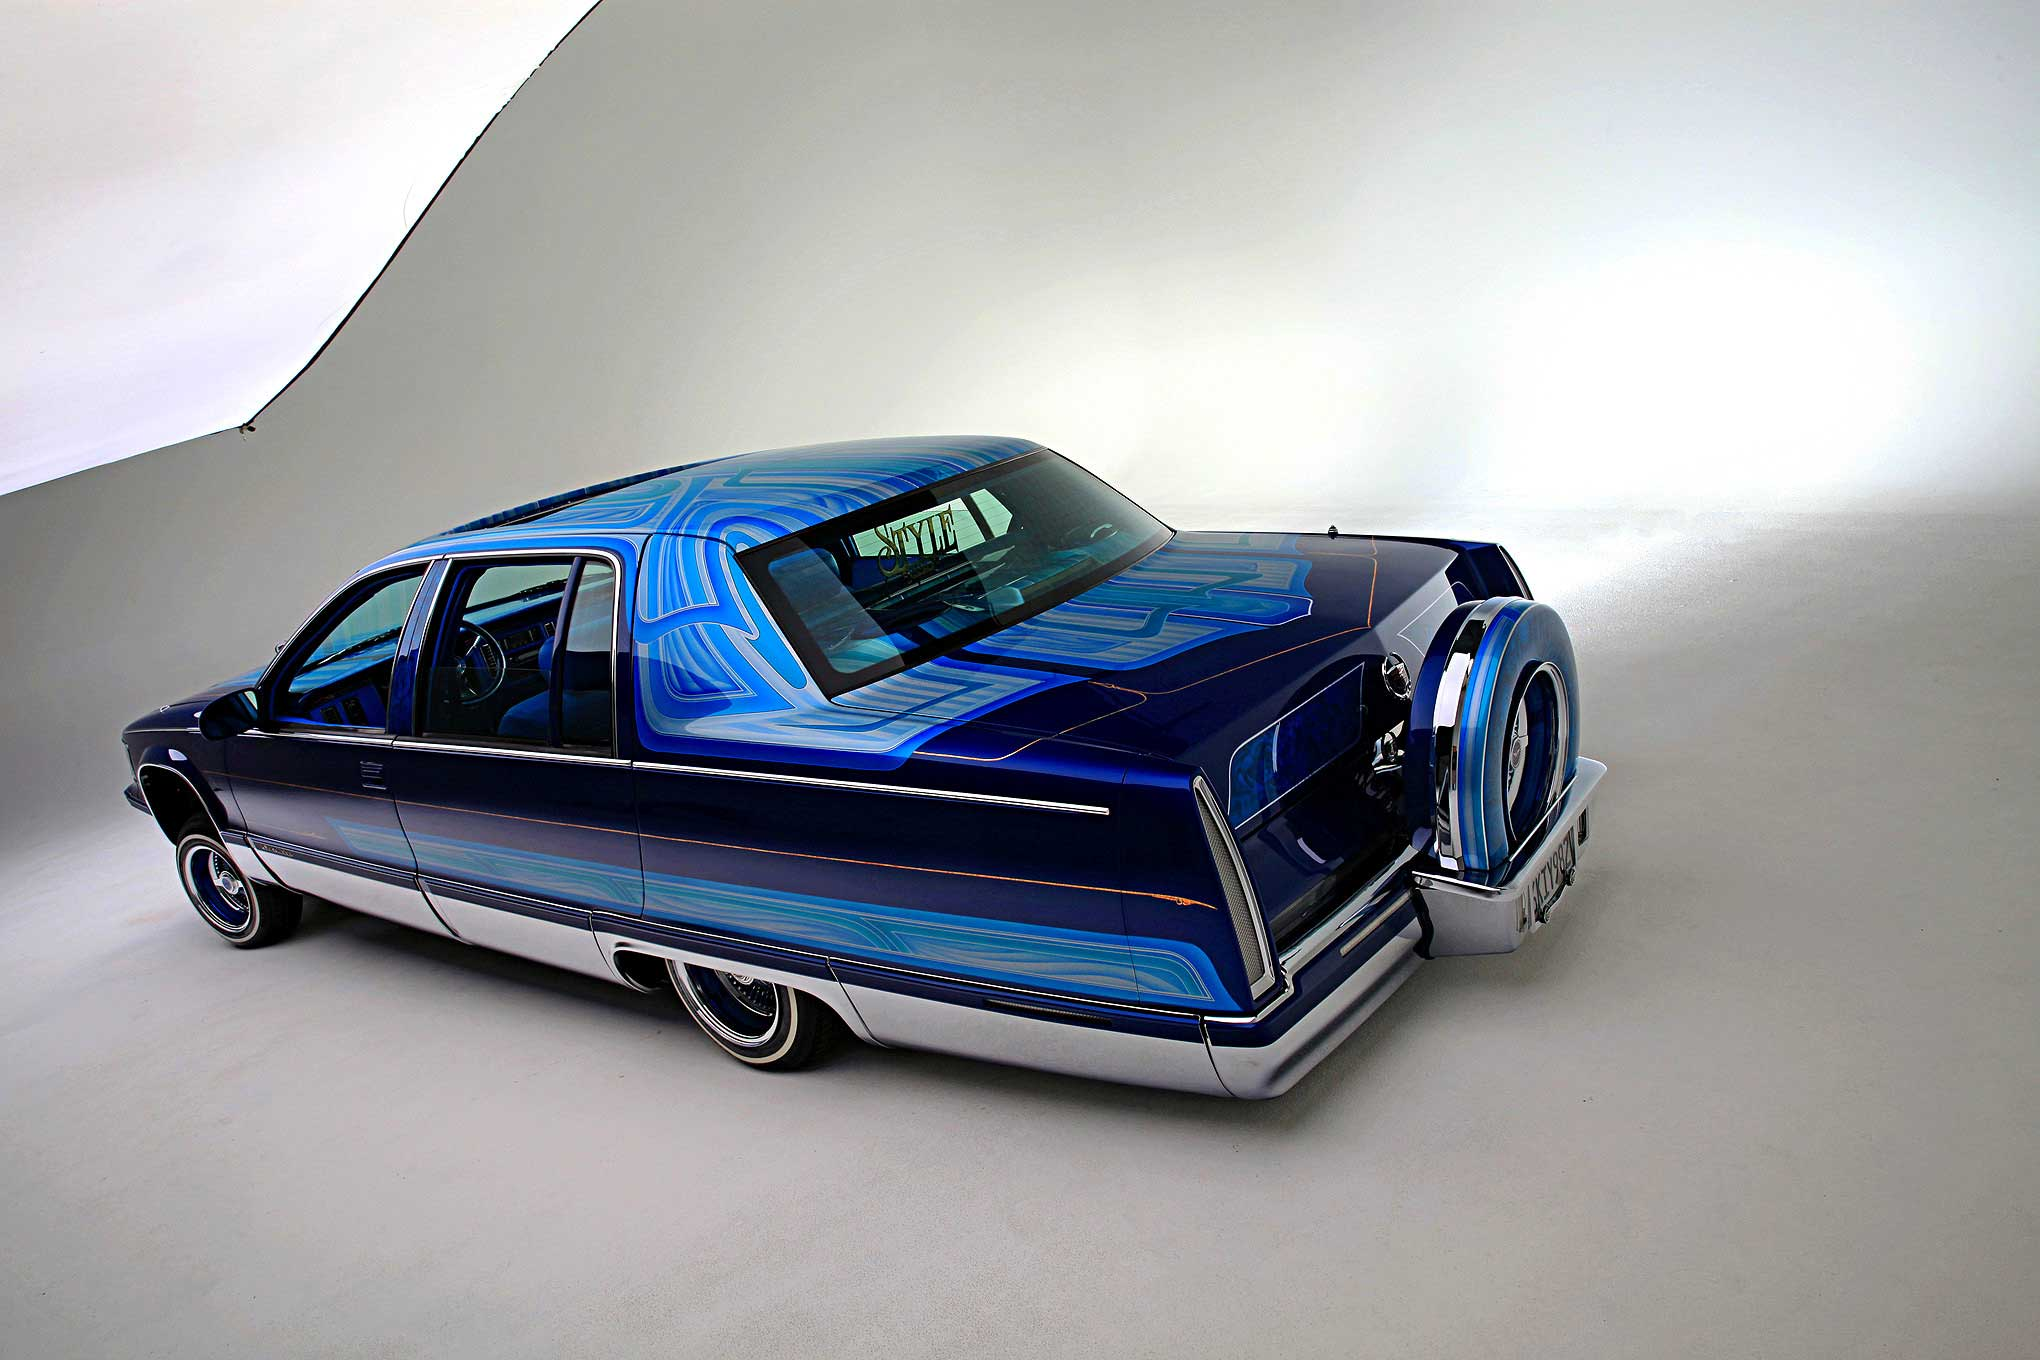 1995 cadillac fleetwood rear view lowrider 1995 cadillac fleetwood rear view